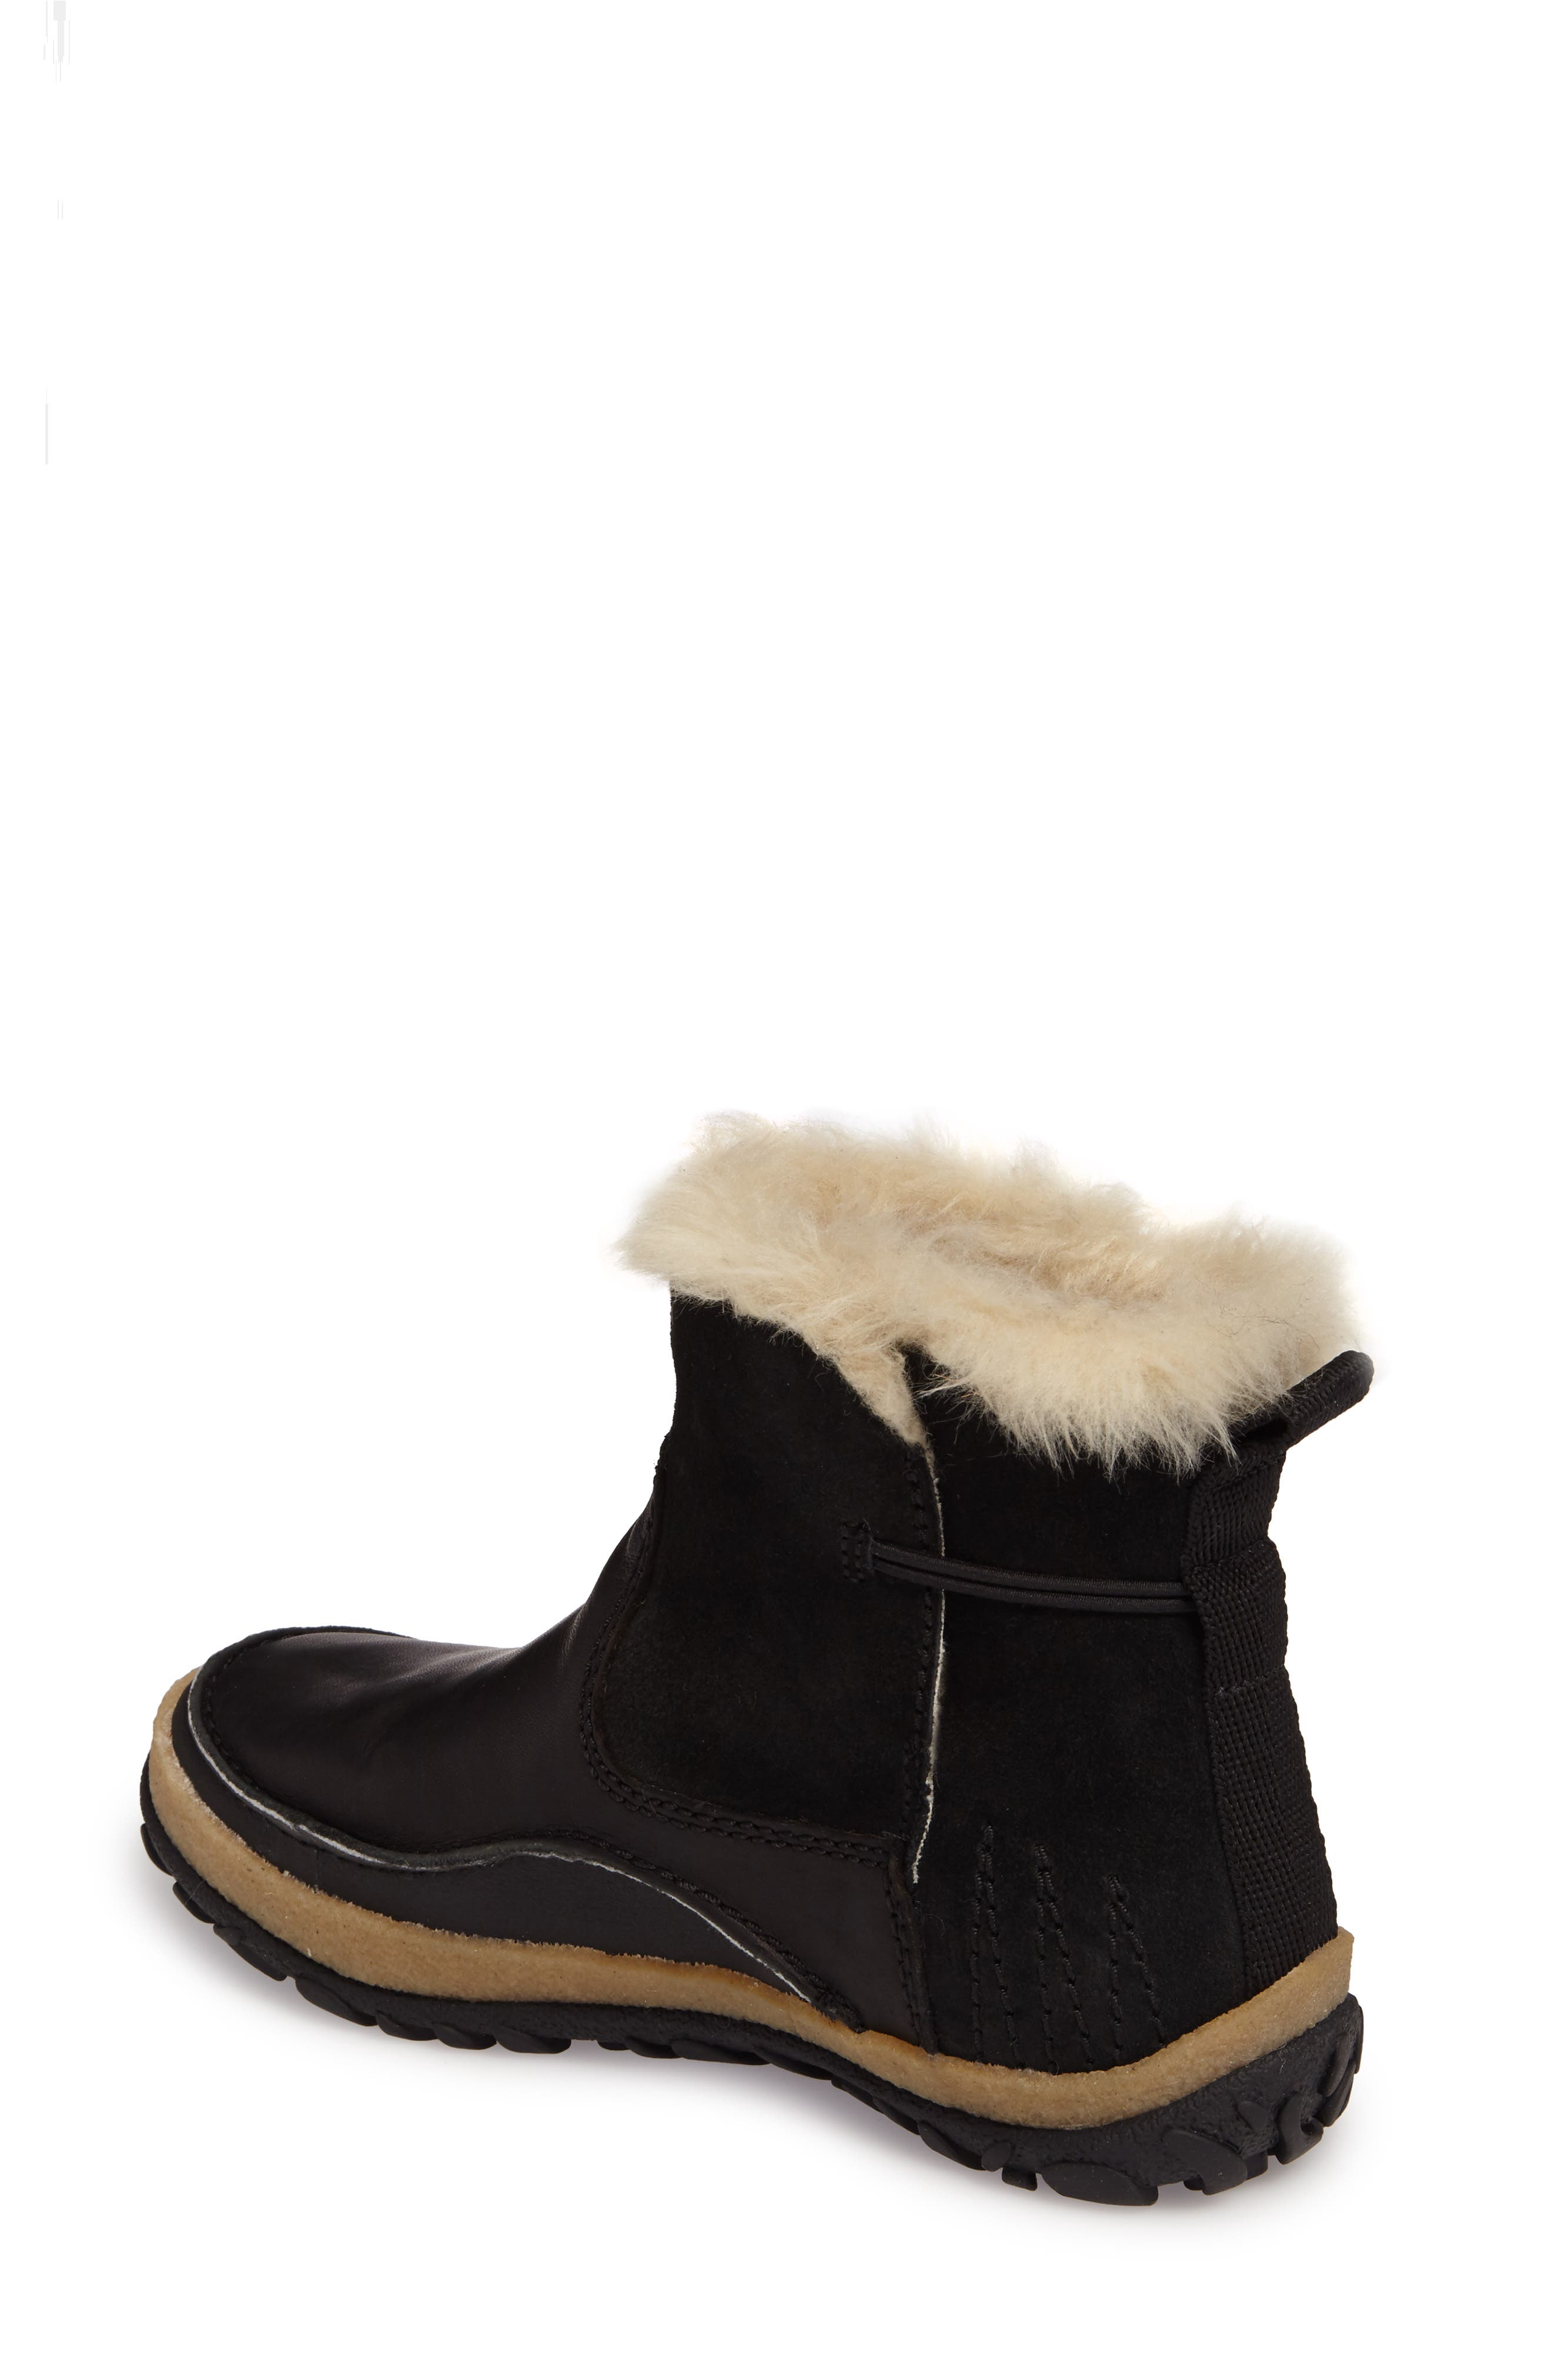 Tremblant Pull-On Polar Waterproof Bootie,                             Alternate thumbnail 2, color,                             001